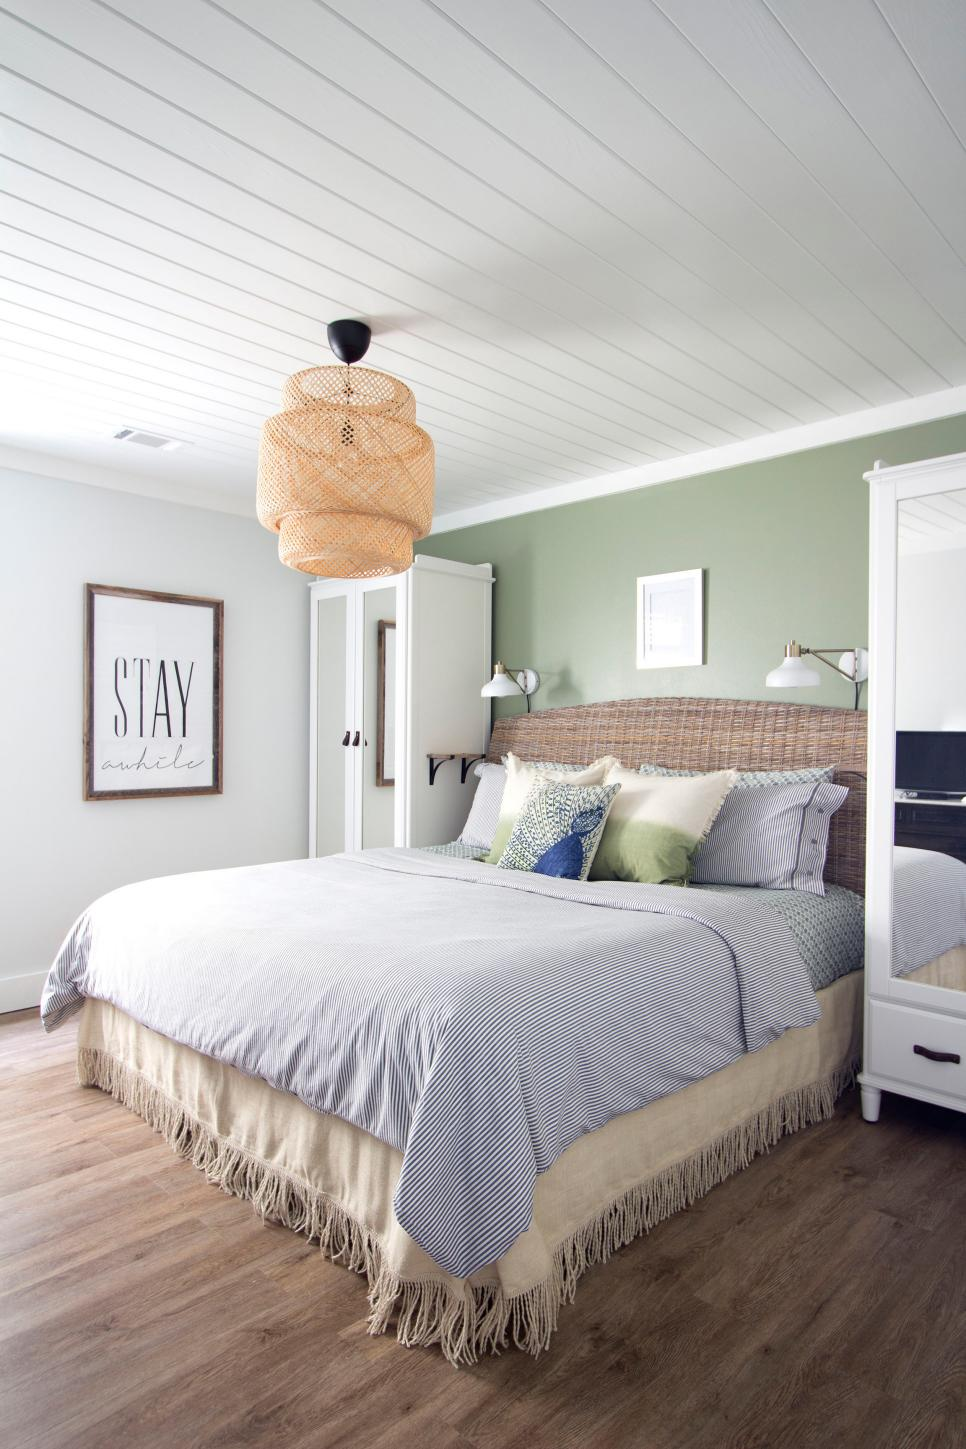 Beach Bedroom in Gray and Sage Green With Wicker Headboard